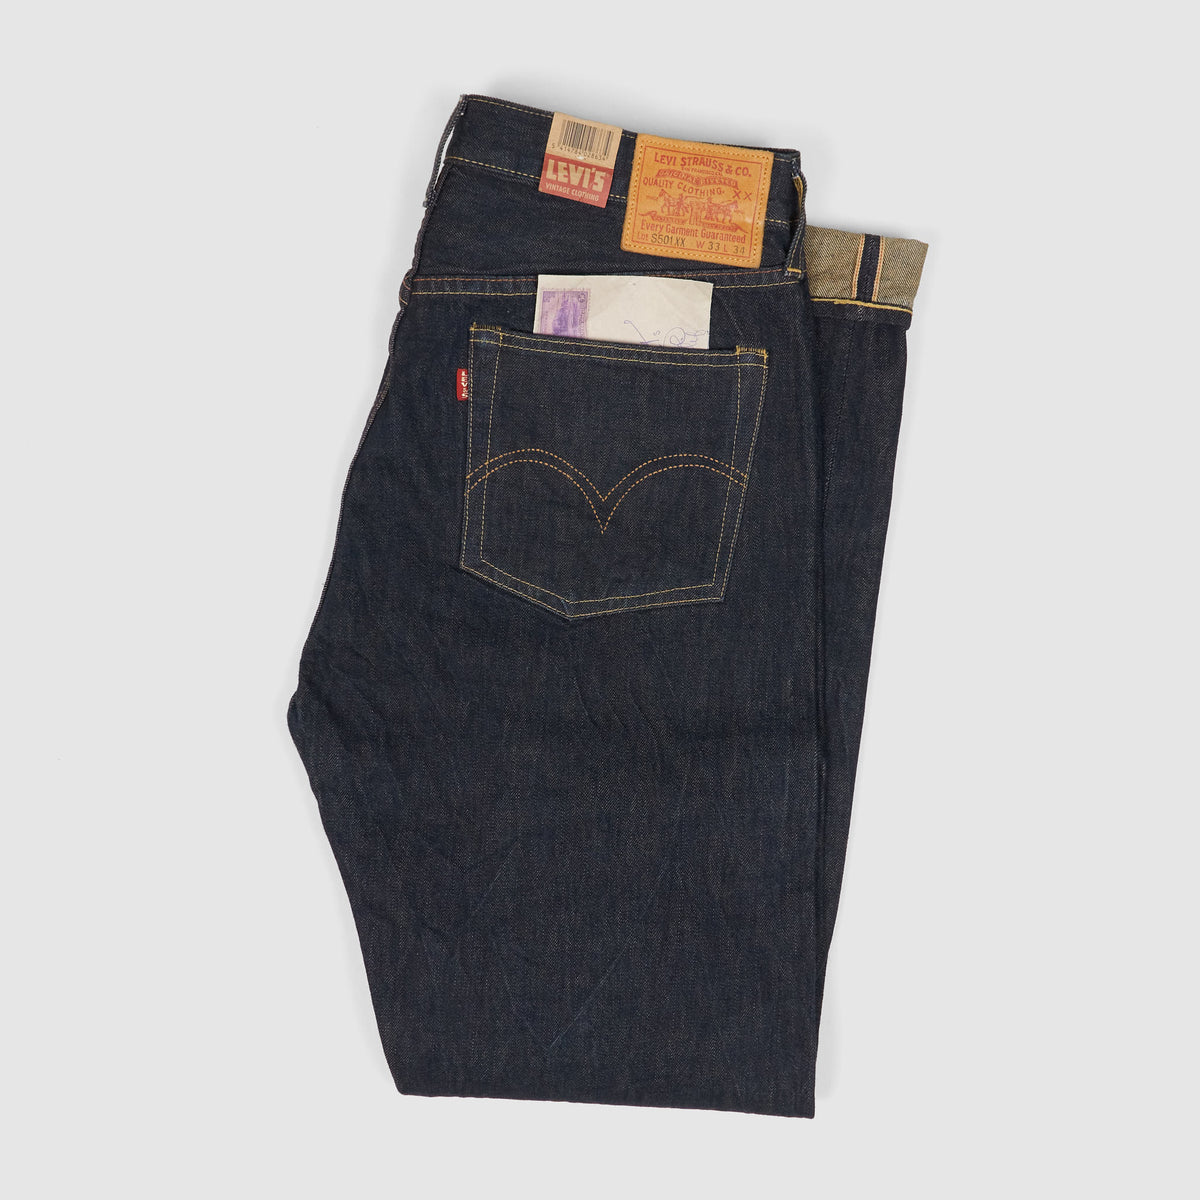 Levi's Vintage Clothing 501 1944 Rinsed Denim Jeans